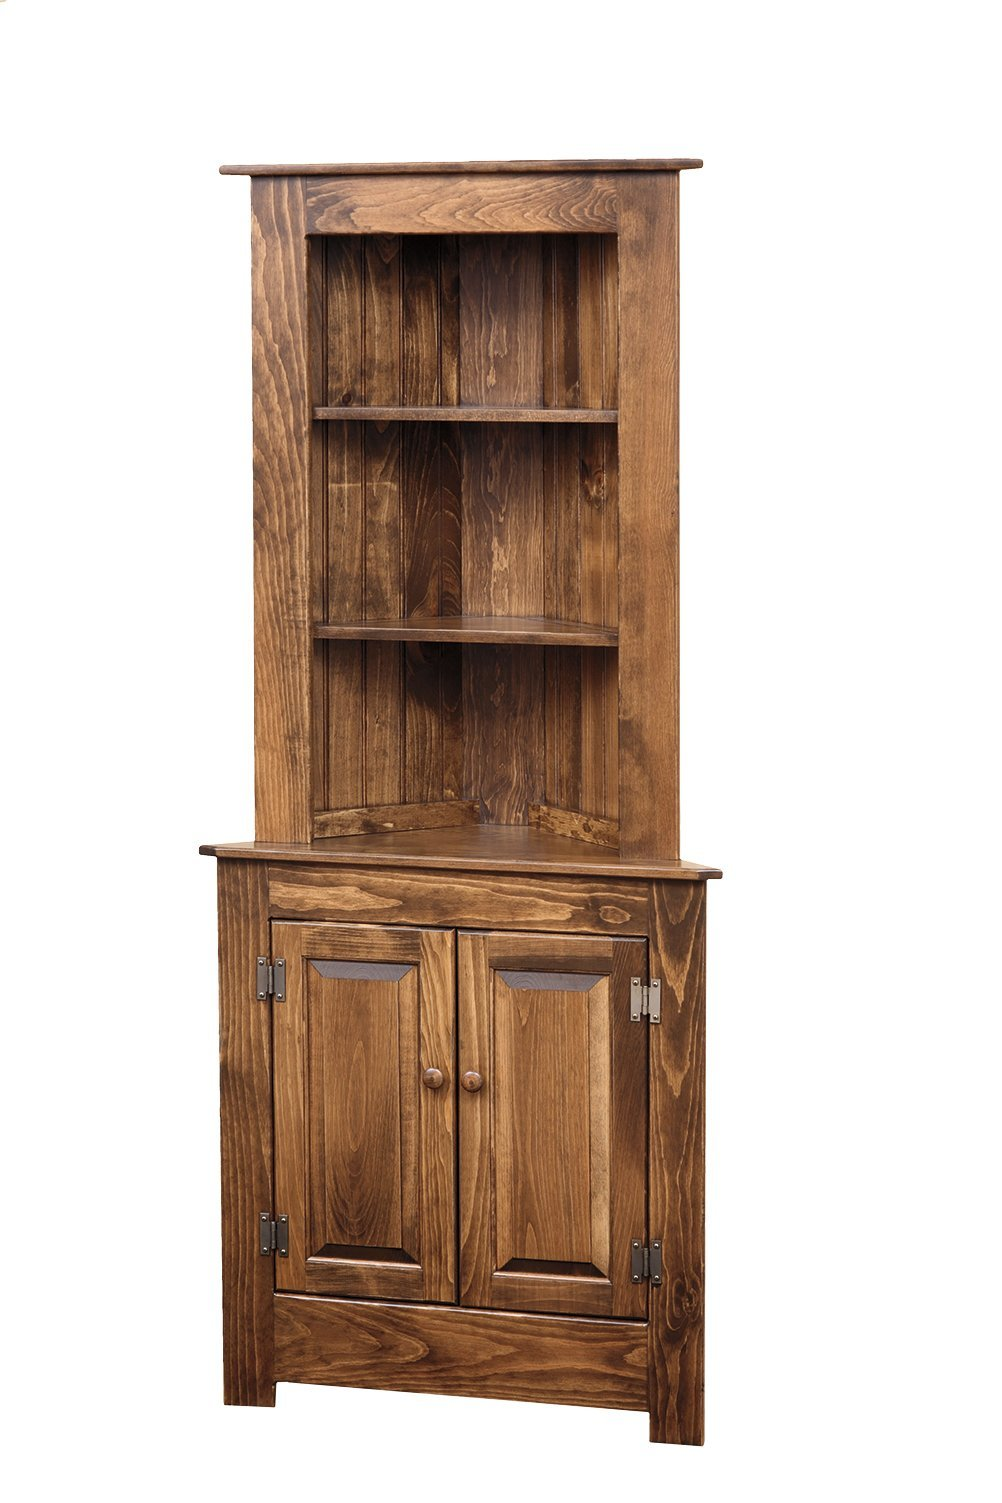 country furniture by dutchcrafters amish furniture farmhouse corner hutch in pine wood